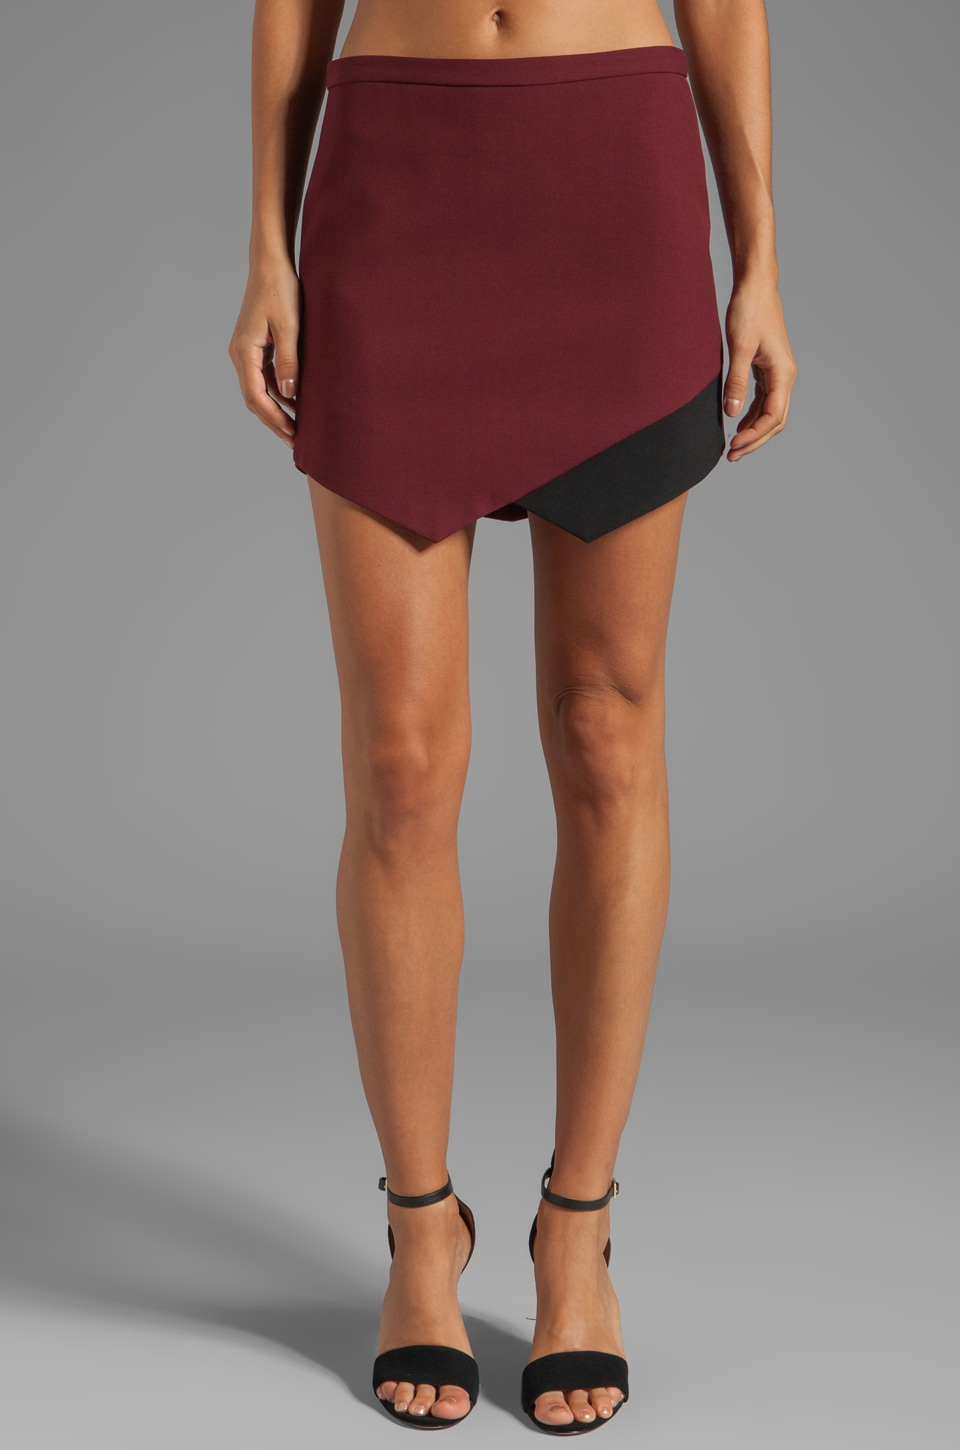 Michelle Mason Contrast Hem Skirt in Wine/Black